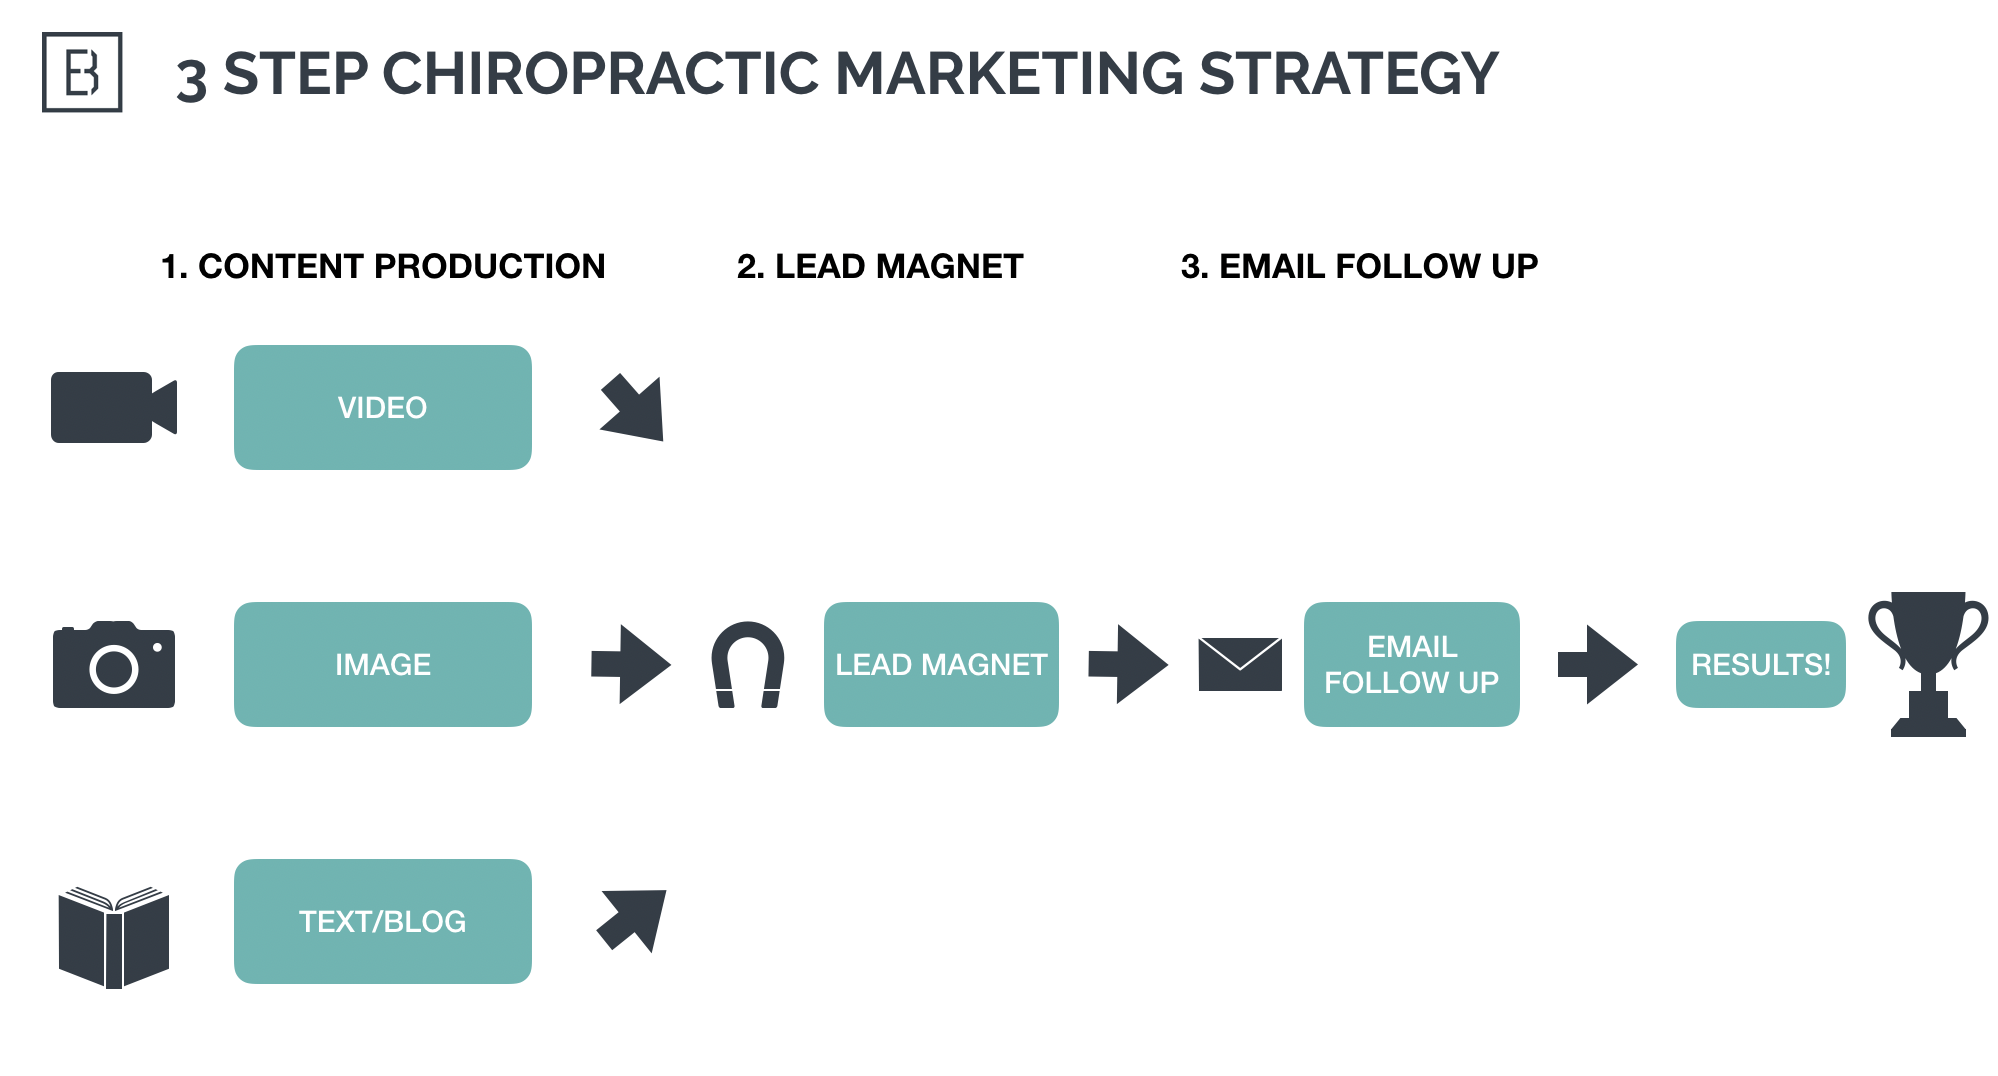 3-step-chiropractic-marketing-strategy.jpg